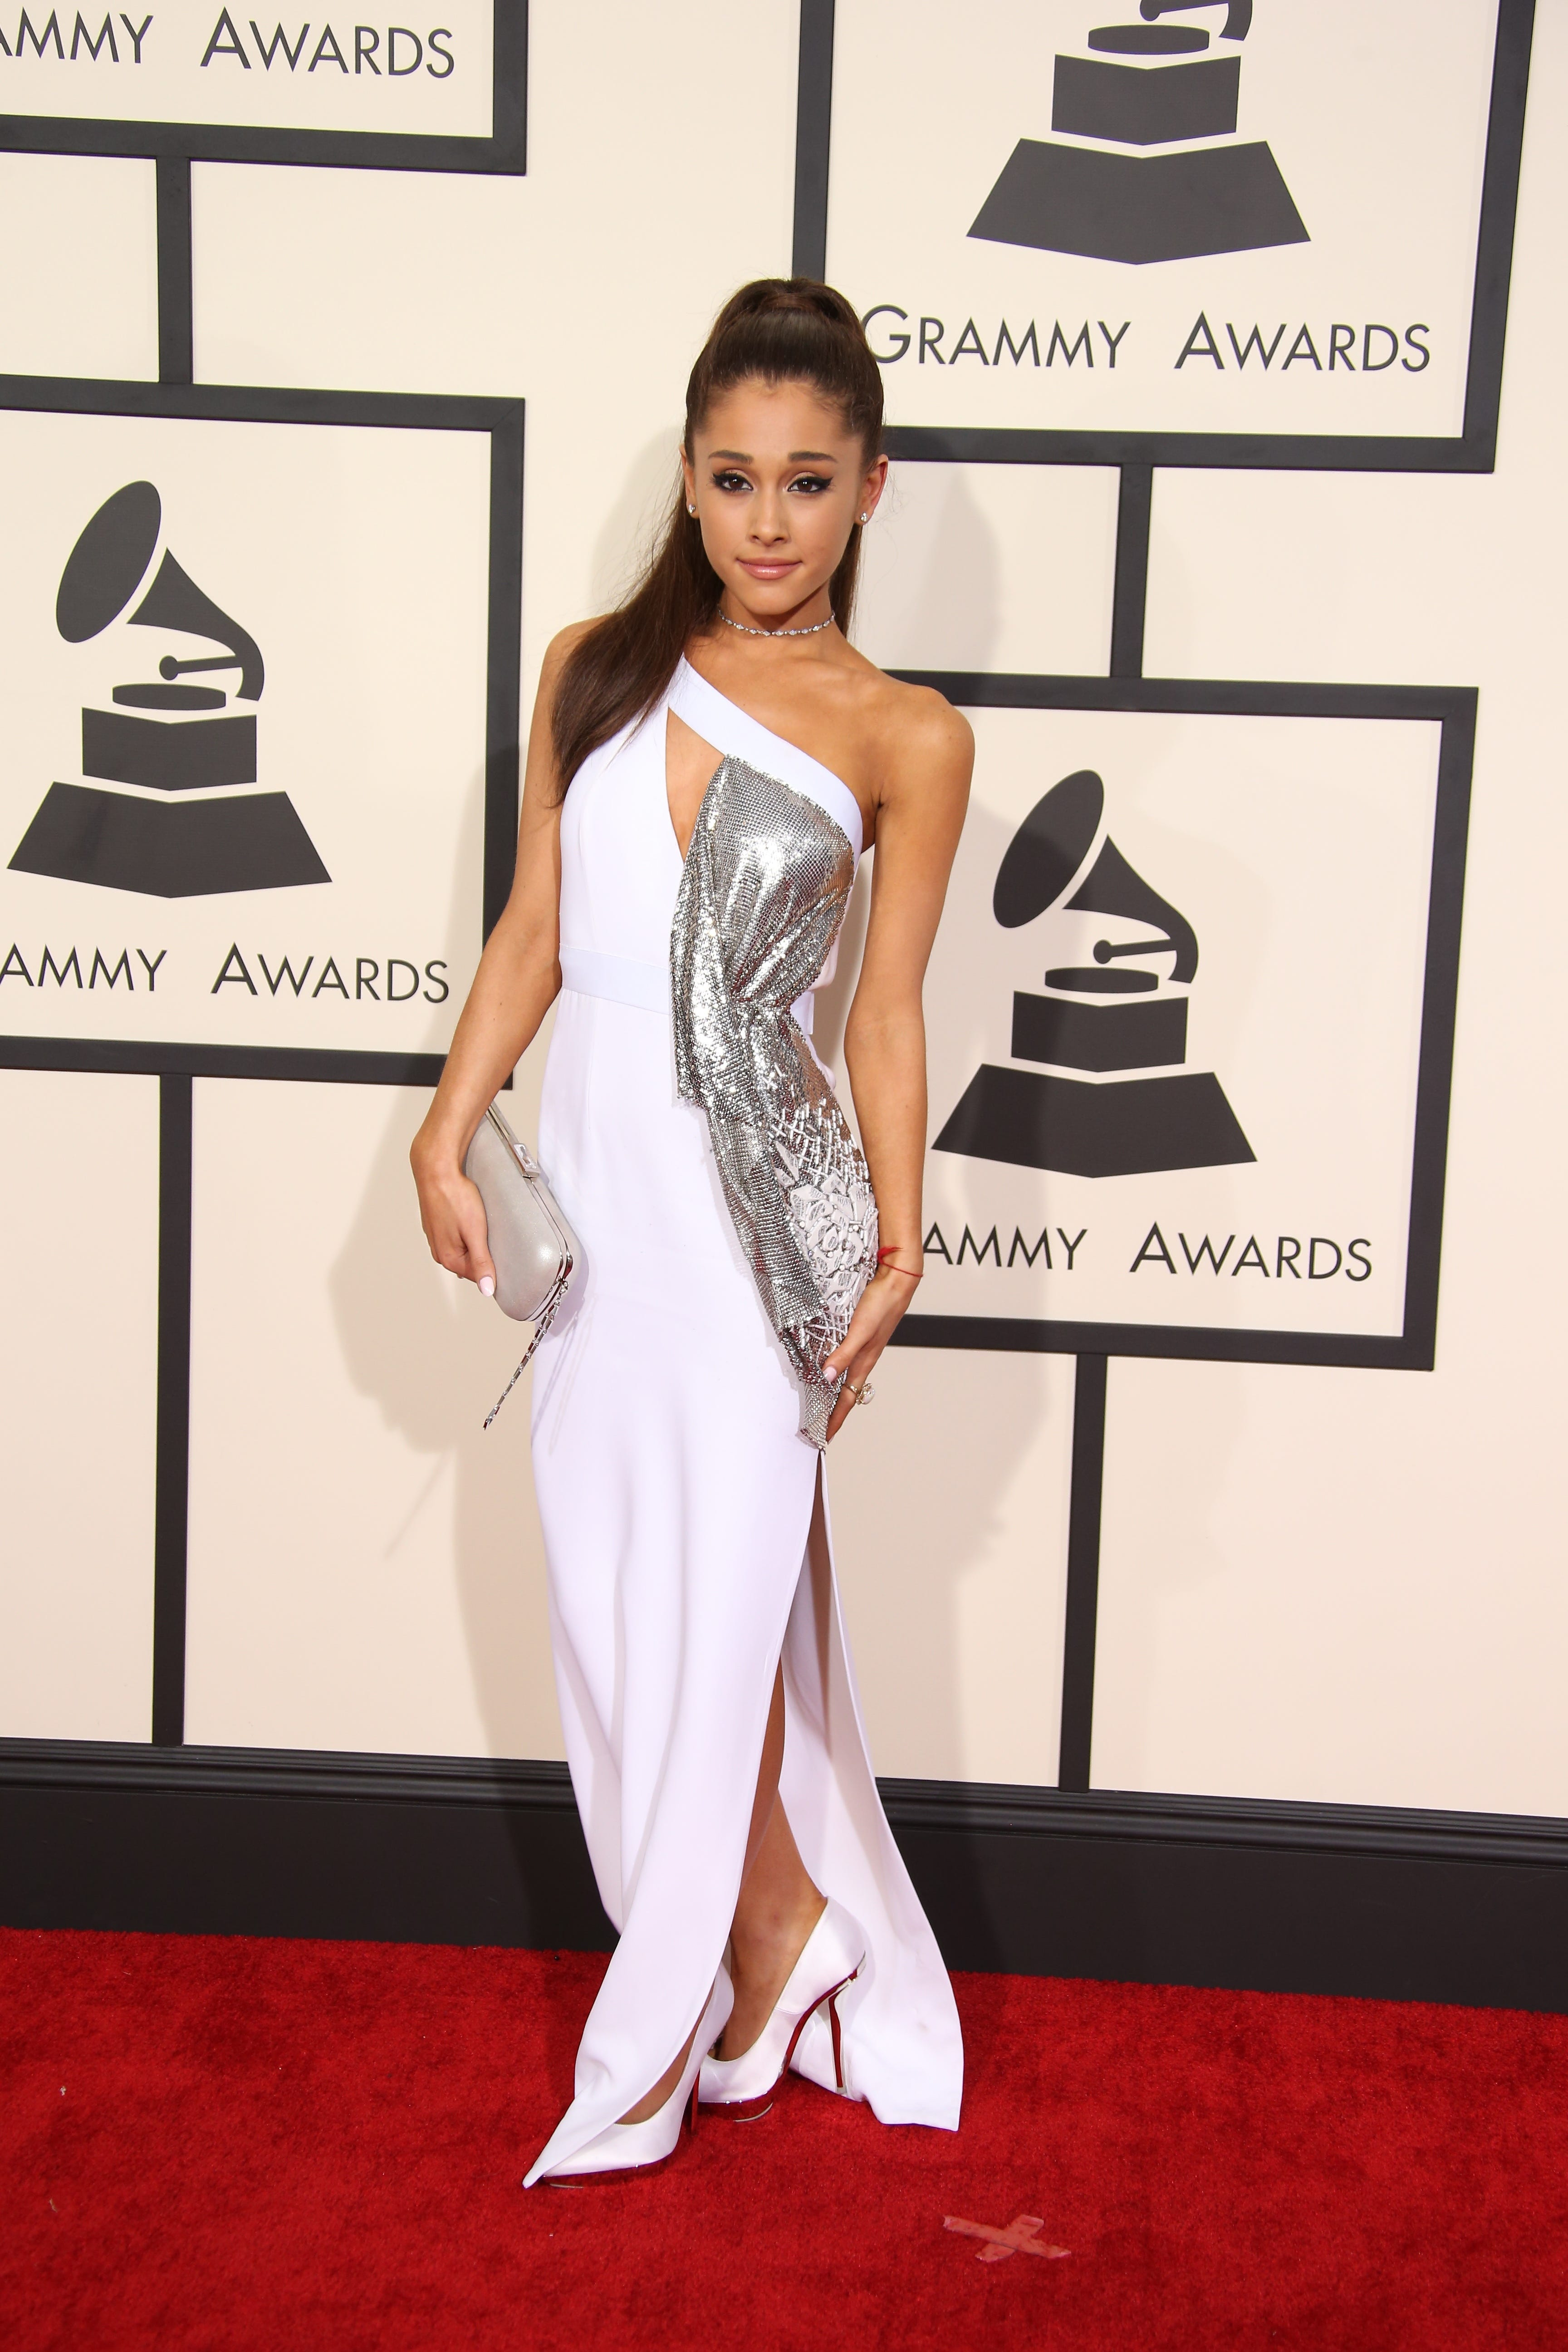 e927cc338 http   www.usatoday.com picture-gallery life style 2014 09 12 ariana ...